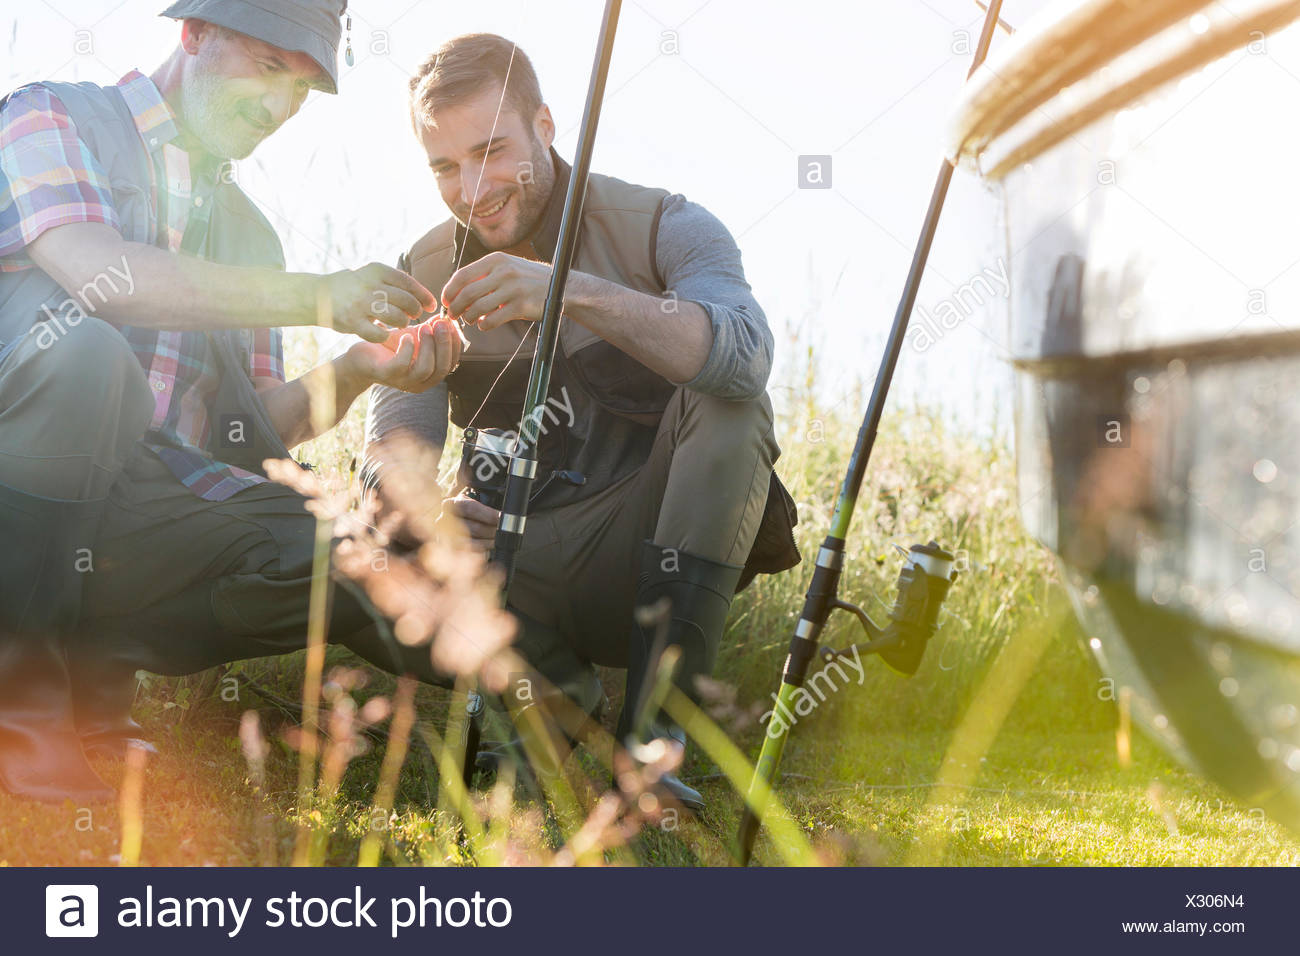 Father and adult son preparing fishing lines - Stock Image